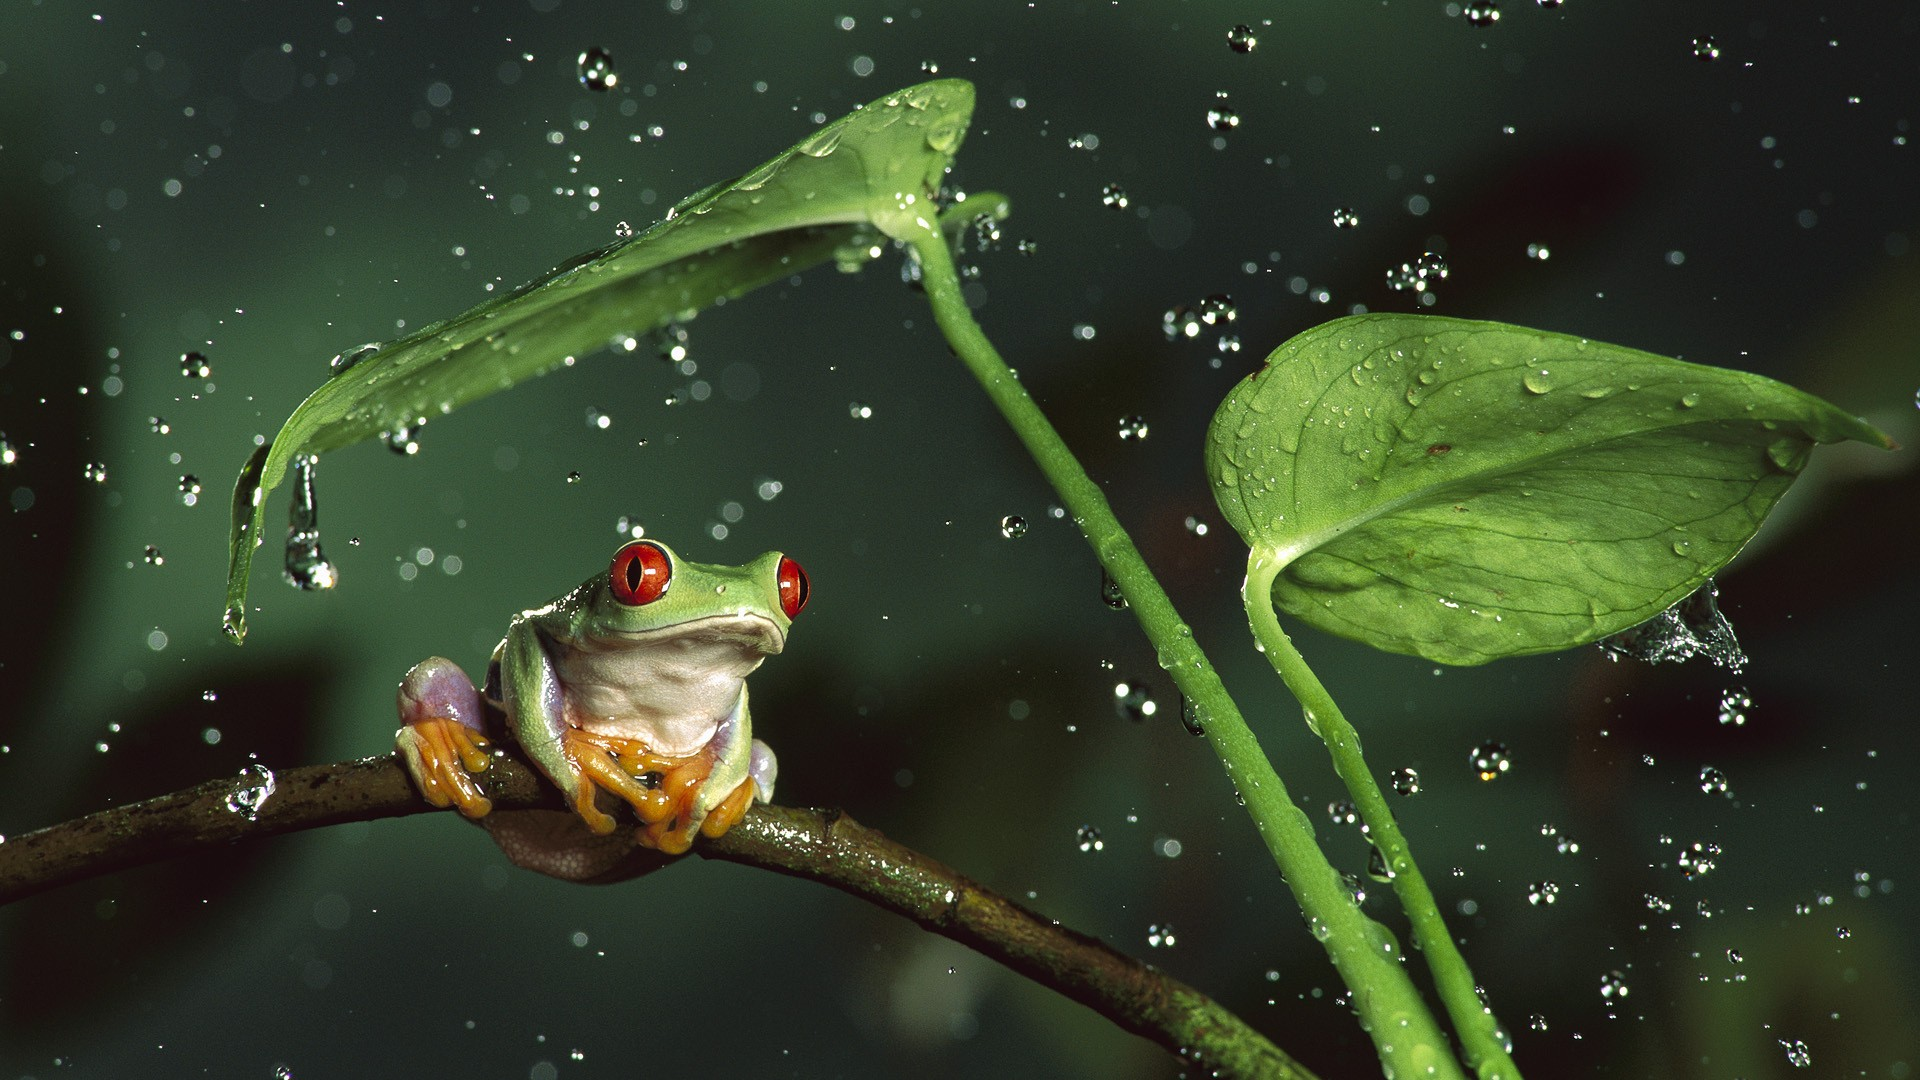 Nature rain jungle animals leaves frogs water drops macro depth of